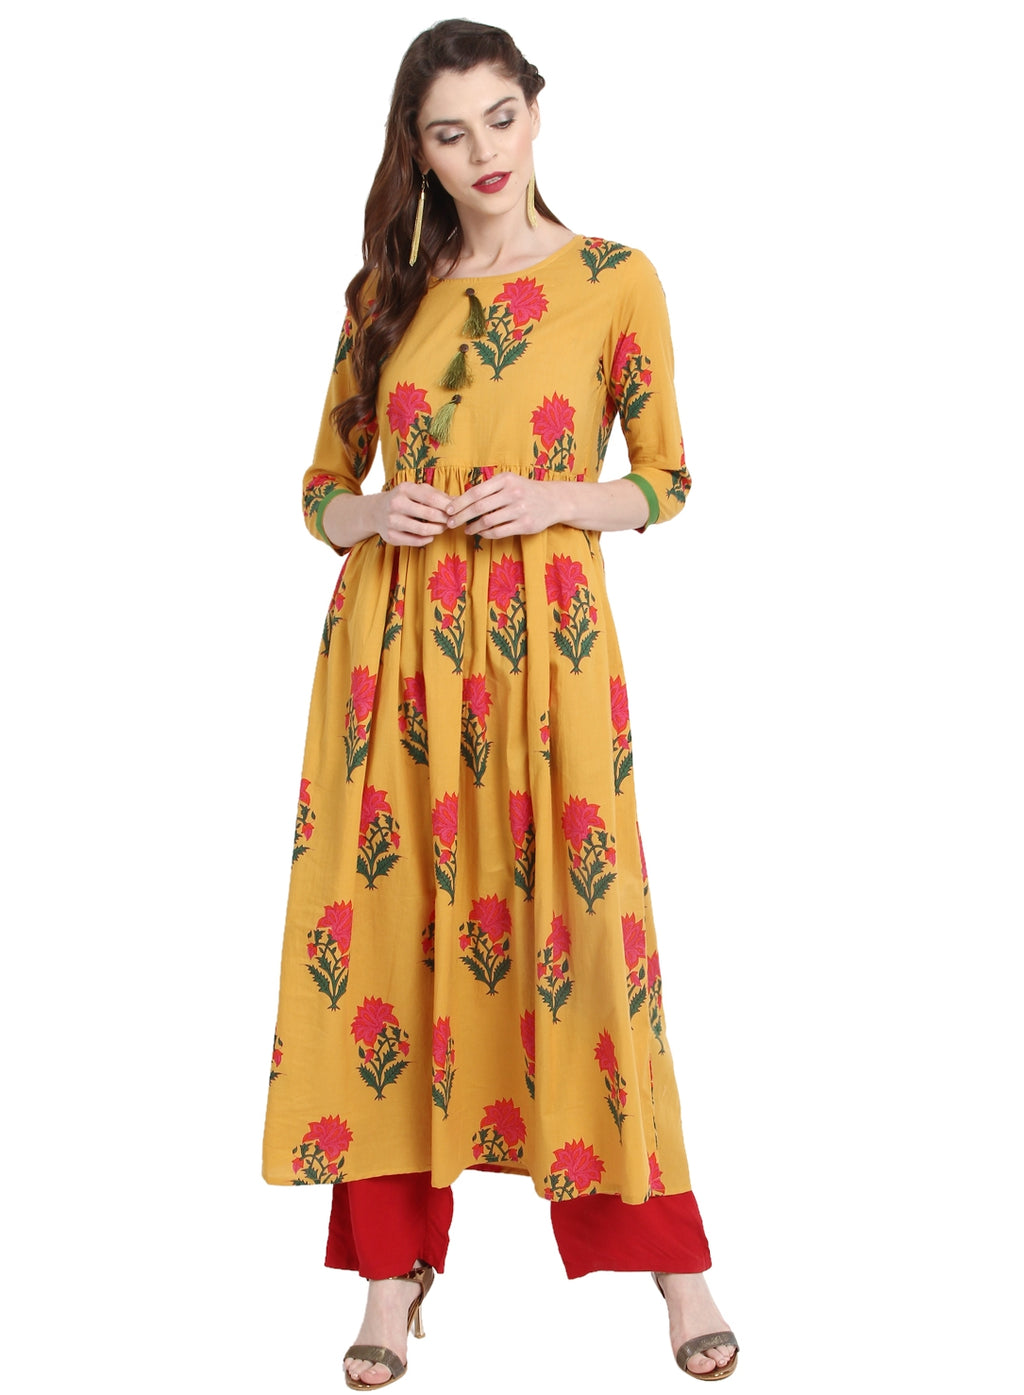 Yellow Color Cotton Readymade Party Wear Kurtis ( Sizes-36,38,40,42,44) Janasya Catlog SJ-10229